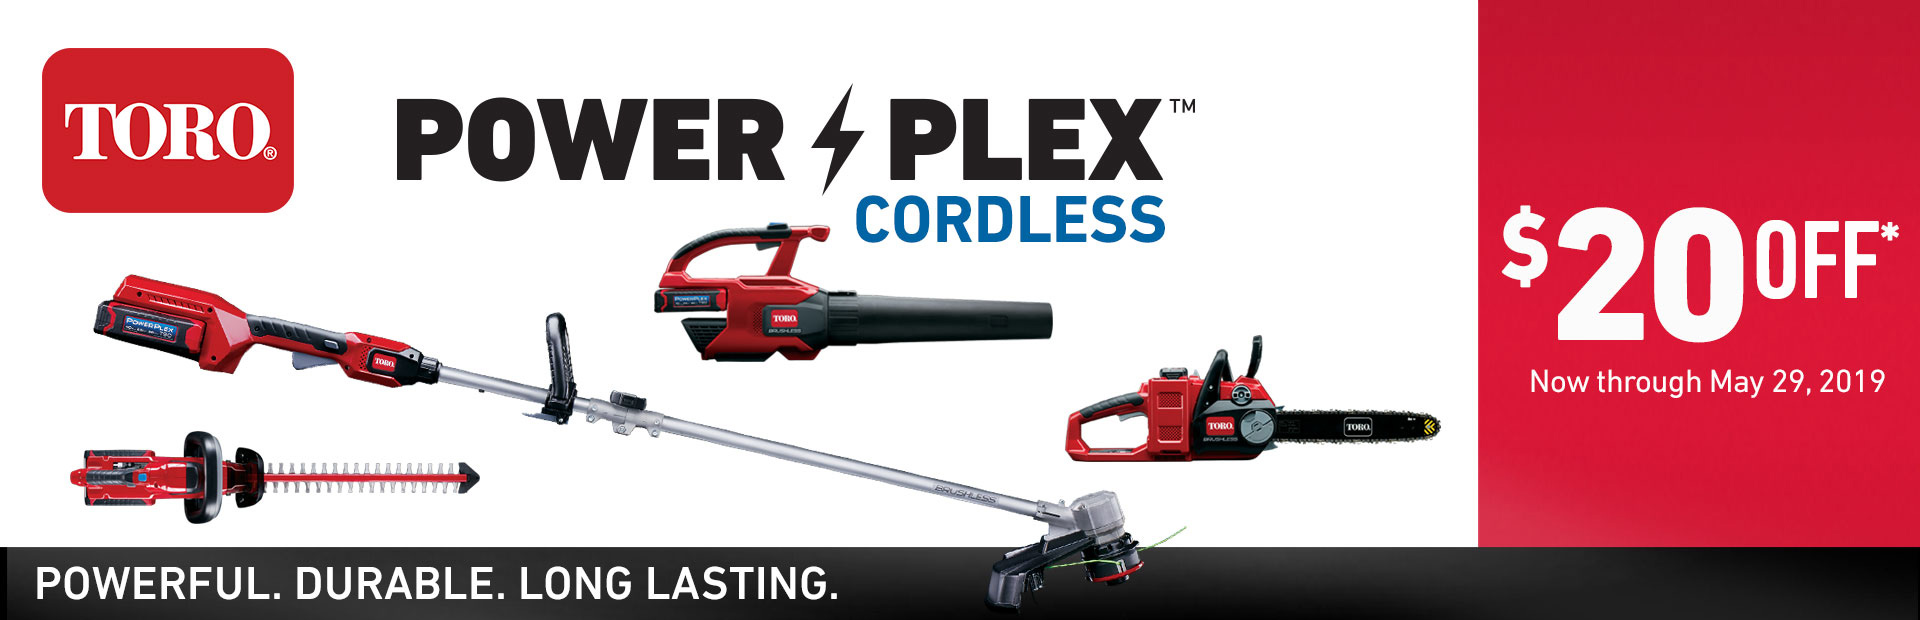 Toro: $20 Off Select Cordless 40V PowerPlex Tools